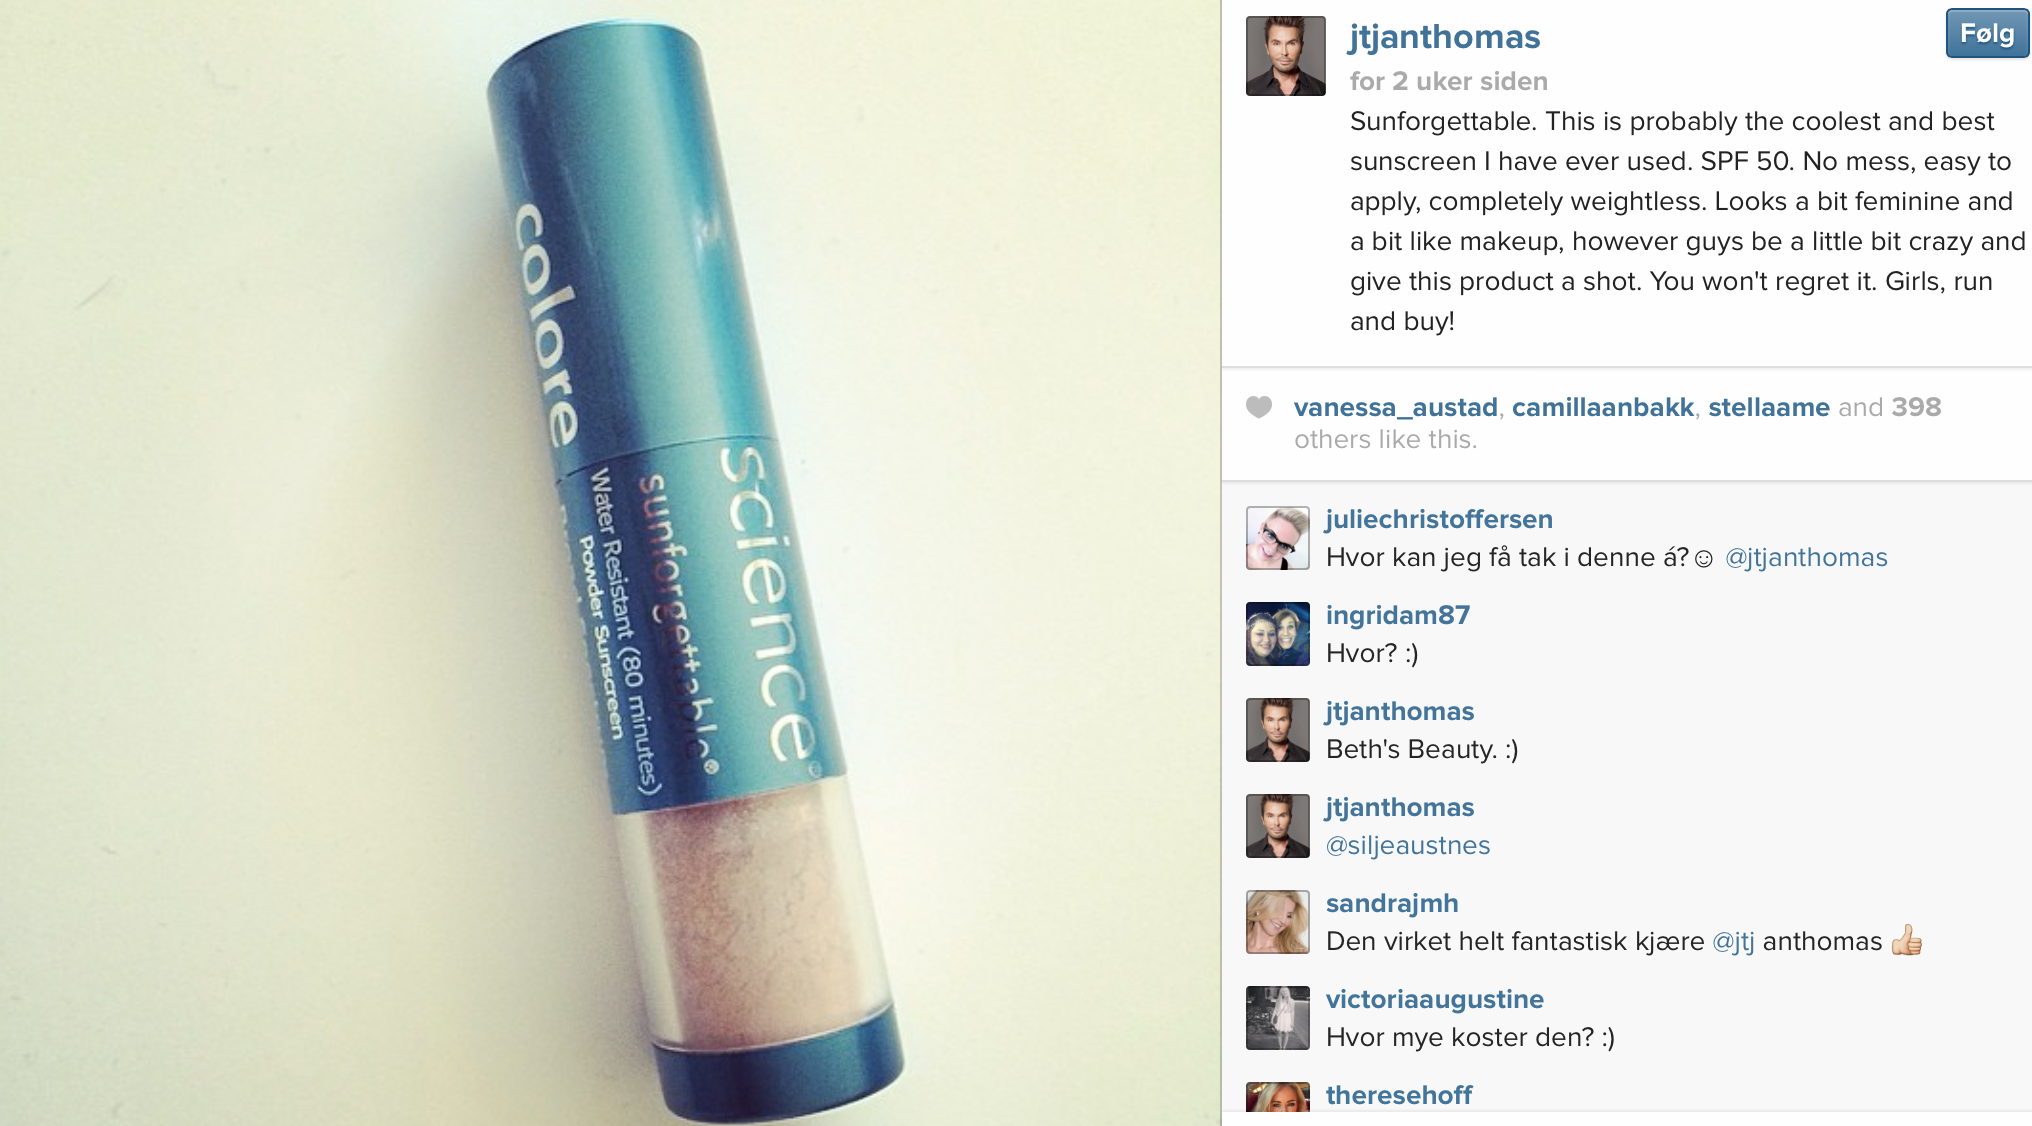 Colorescience sunforgettable mineral sunscreen